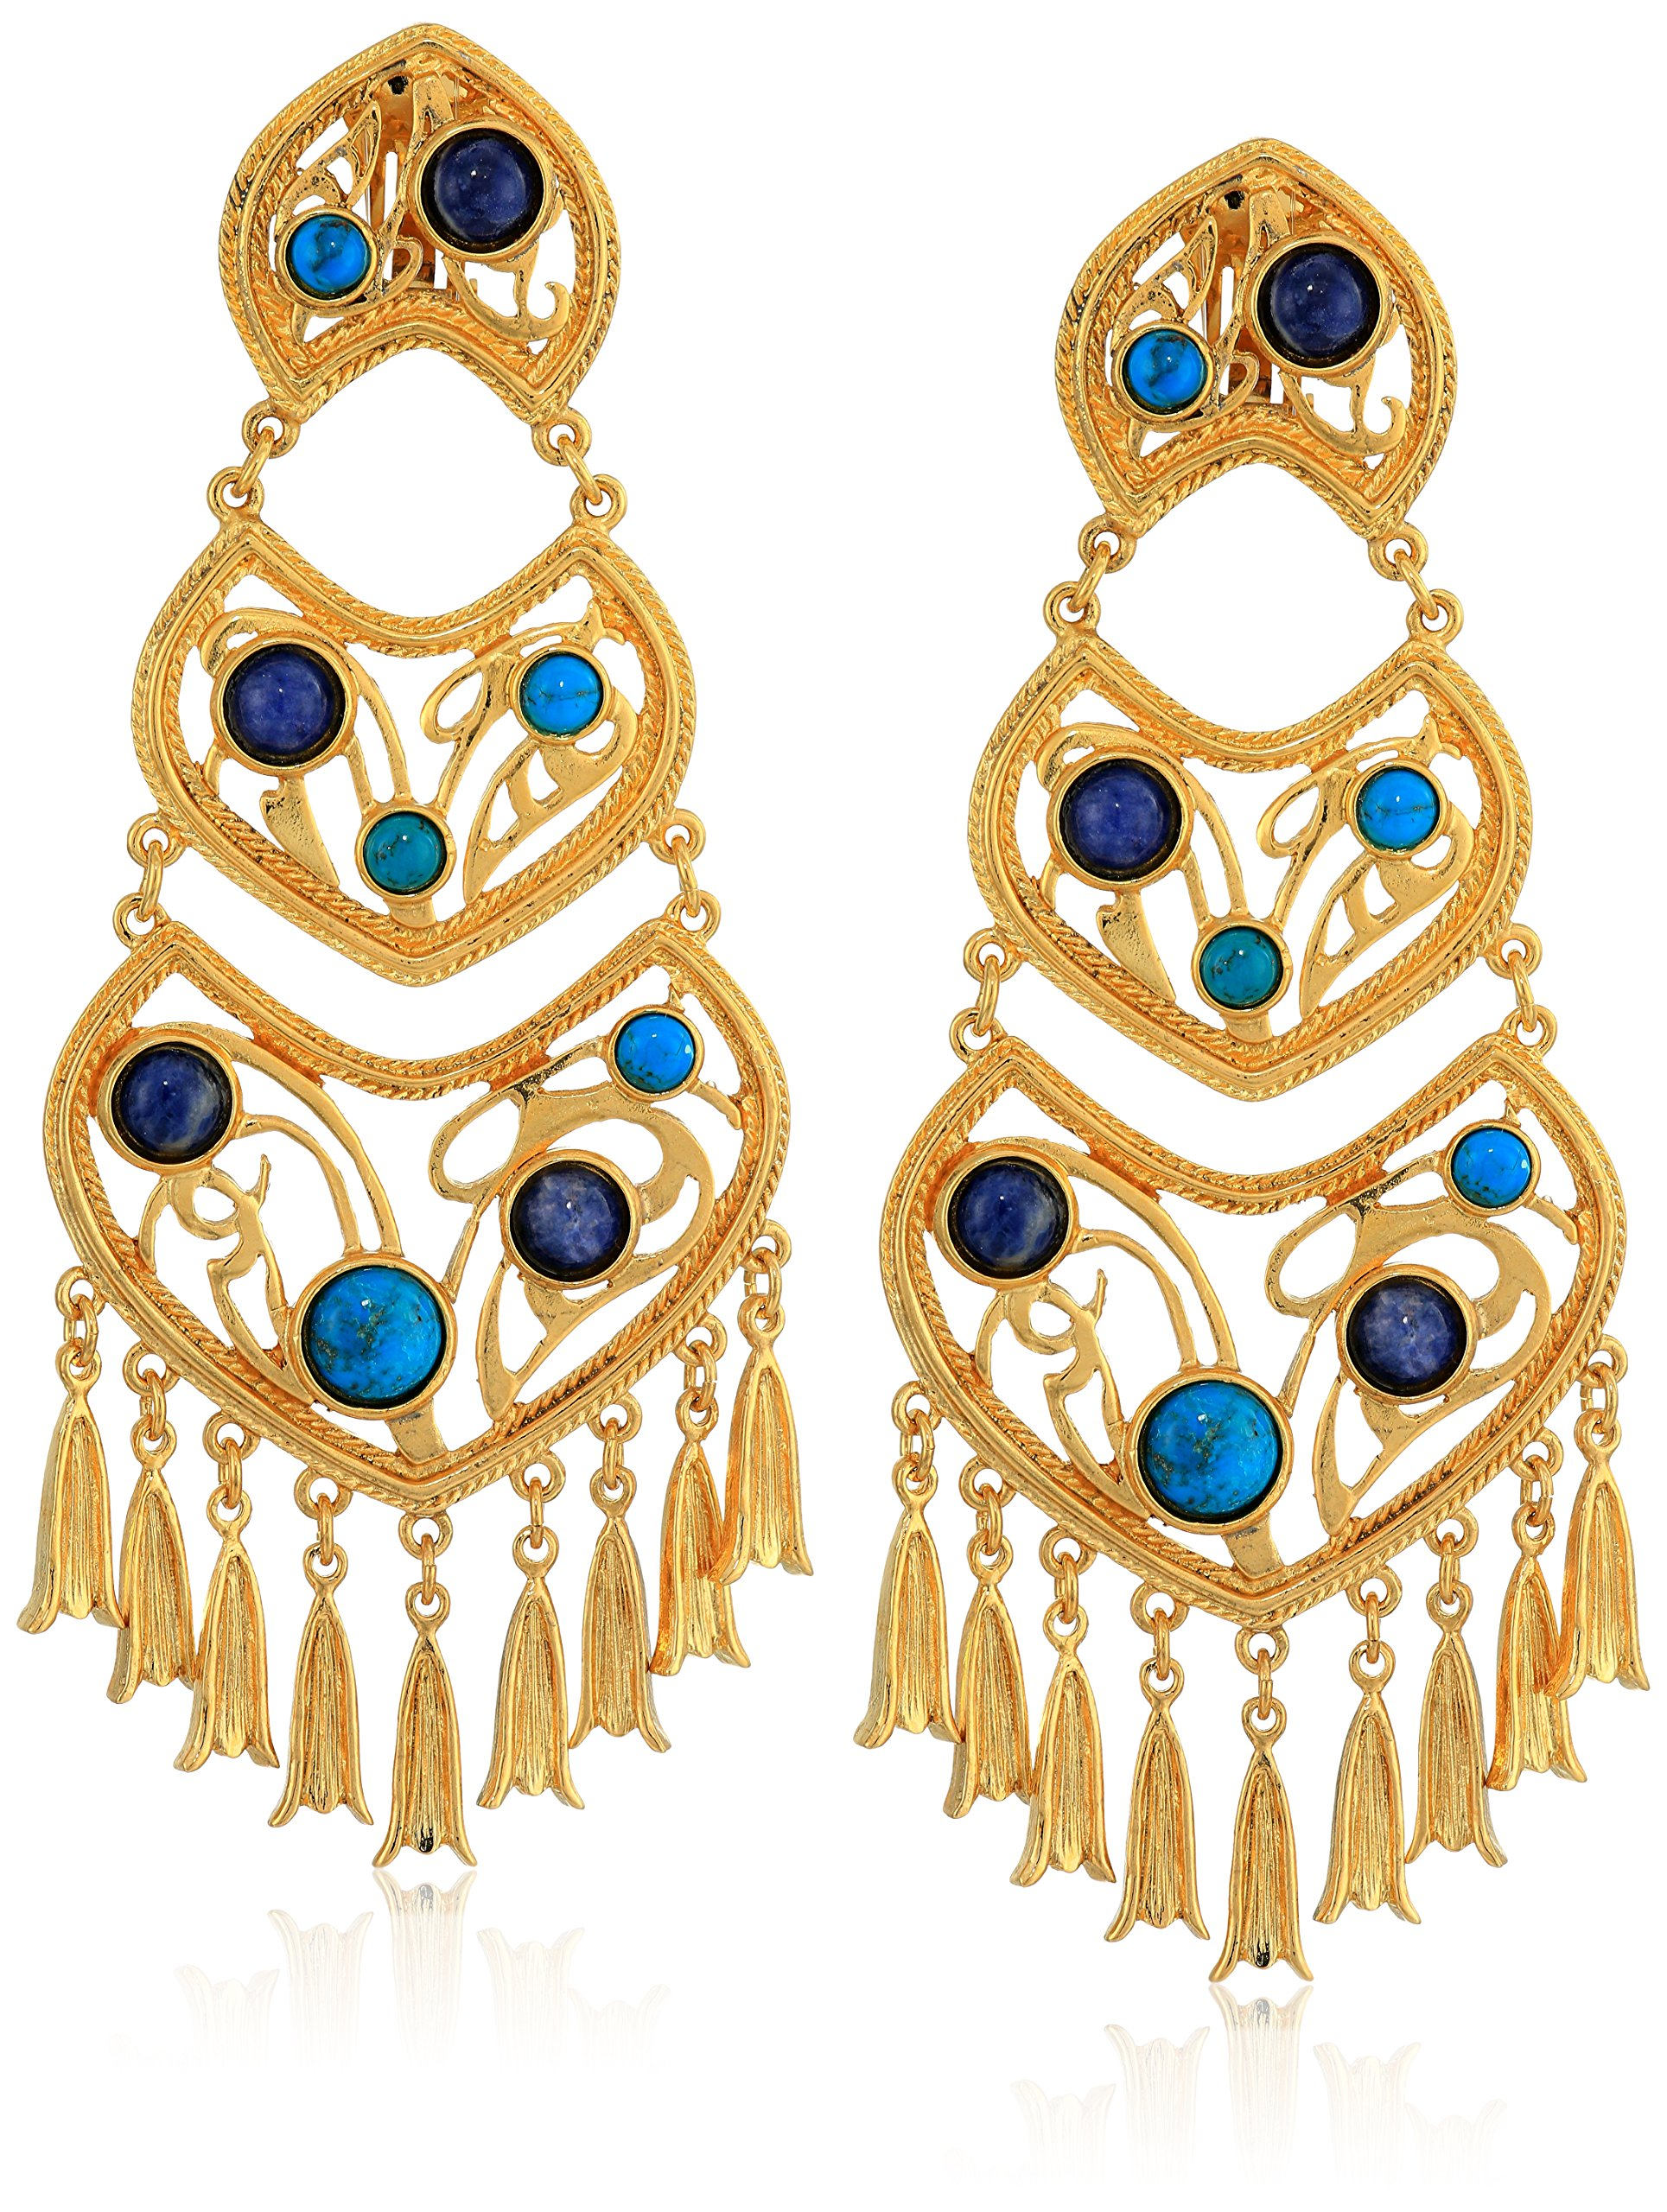 Ben-Amun Jewelry Women's Mediterranea Gold Clip On Earrings with Turquoise Lapis Stones and Tassel Droplets, 4.5 by Ben-Amun Jewelry